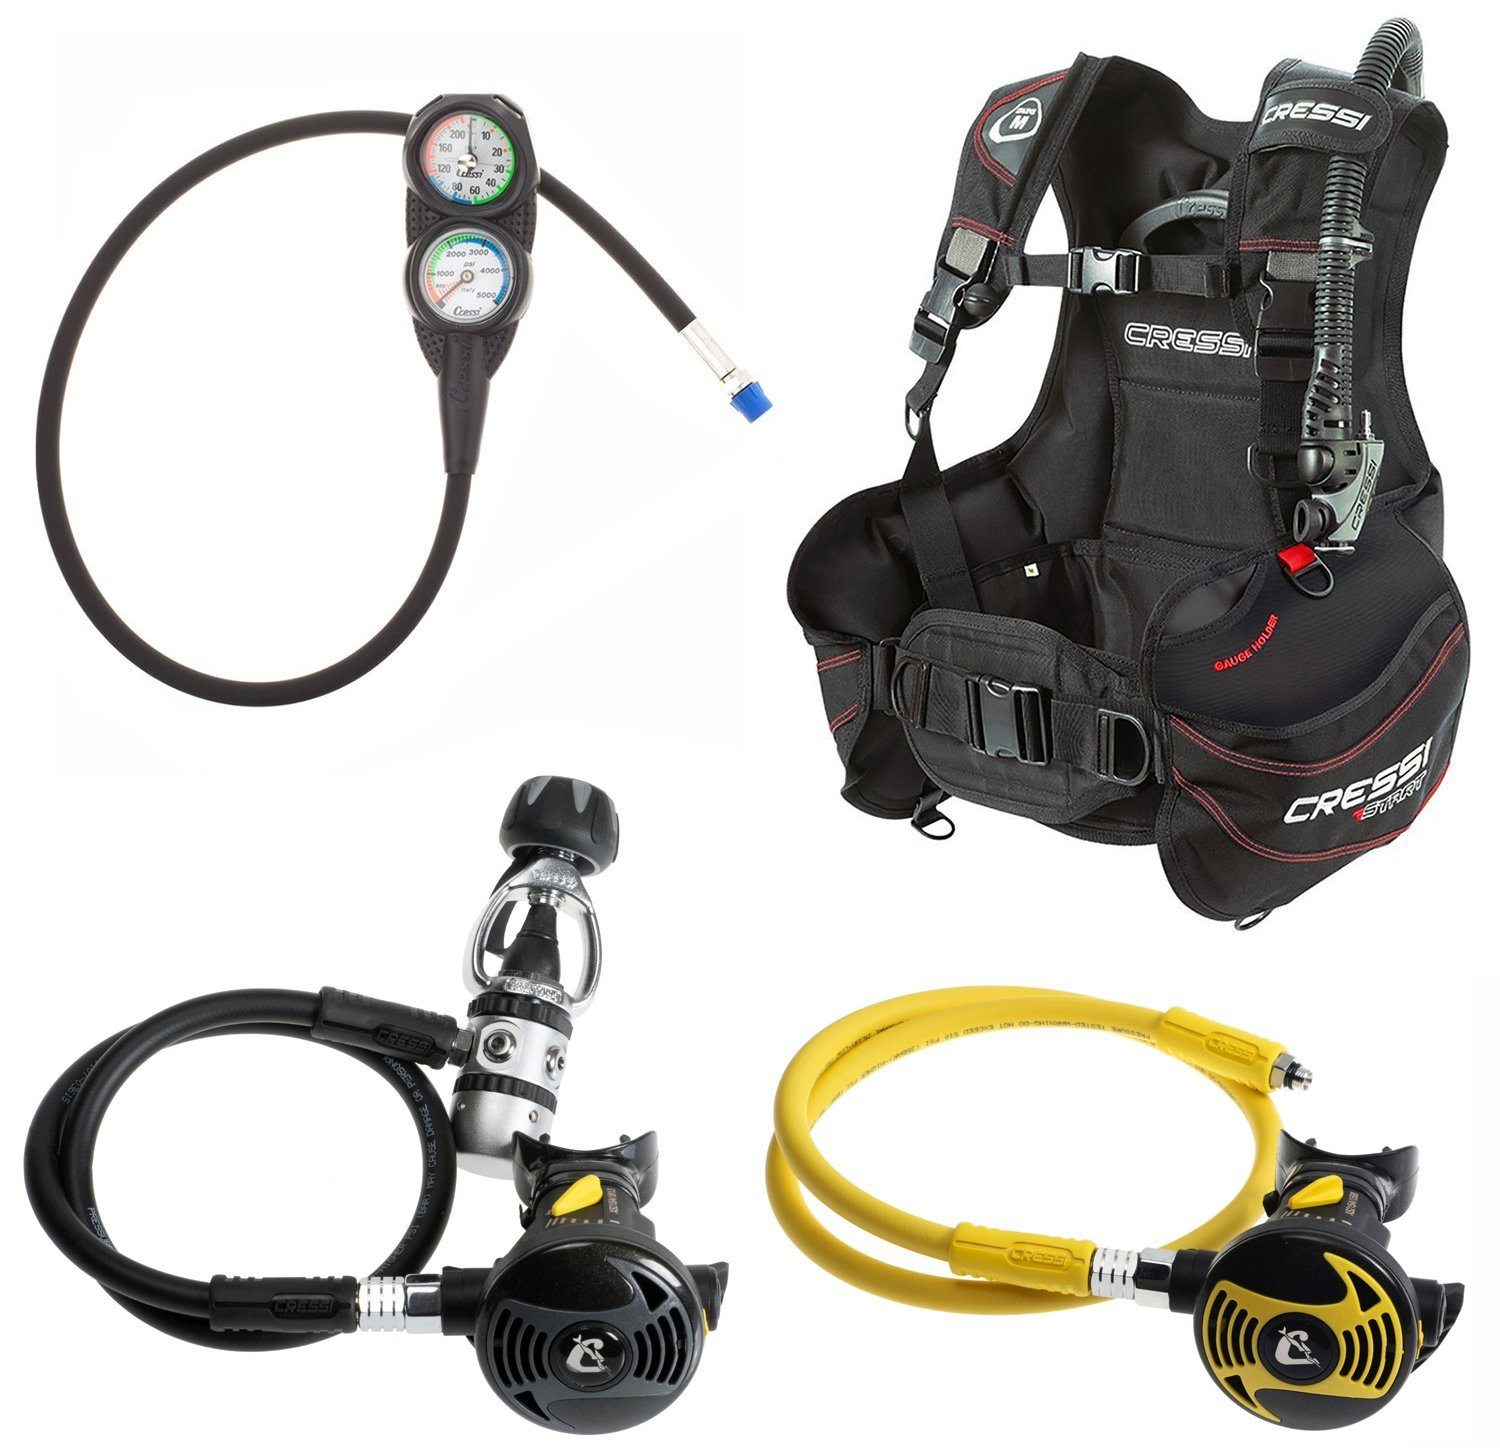 Cressi Sub Start Equipment for Scuba Diving, made in Italy